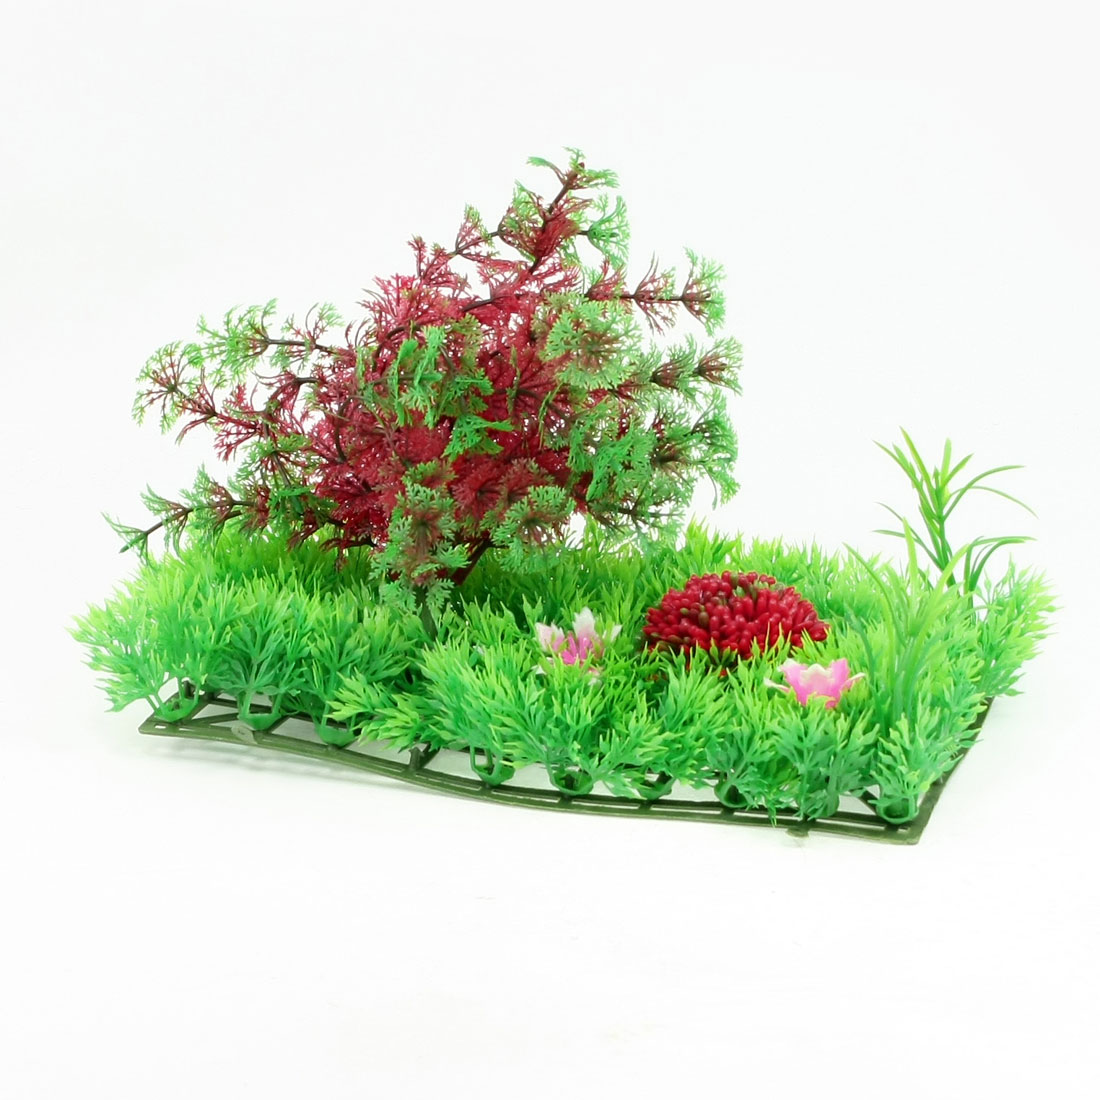 Fish-Tank-Plastic-Crimson-Green-Snow-Flake-Leaf-Plants-Lawn-Decor-9-8-x-4-5